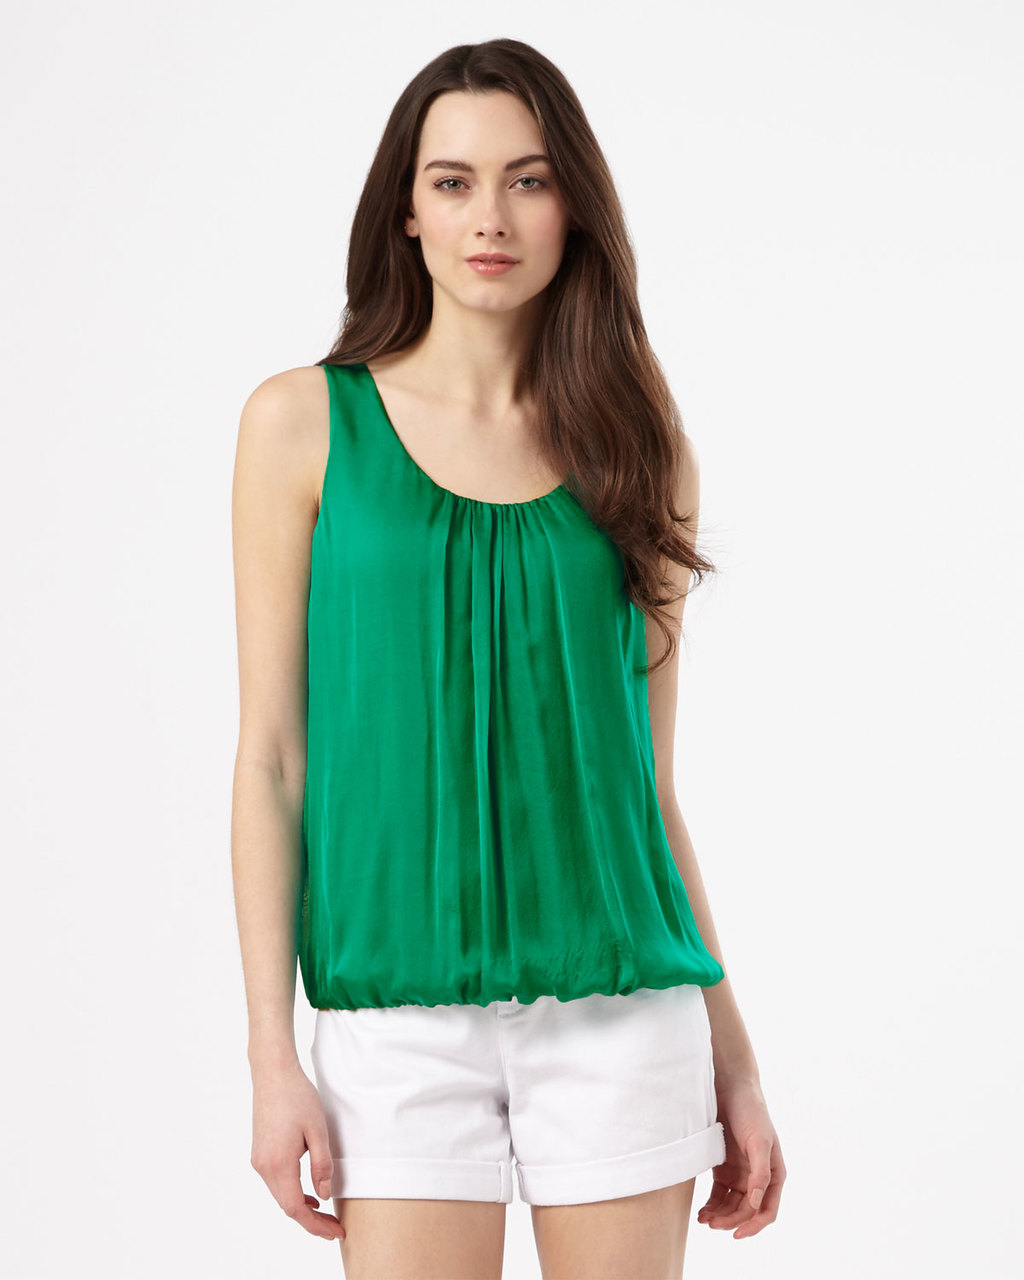 Lua Silk Blouse - sleeve style: standard vest straps/shoulder straps; pattern: plain; style: vest top; predominant colour: emerald green; occasions: casual; length: standard; neckline: scoop; fibres: silk - 100%; fit: straight cut; sleeve length: sleeveless; texture group: silky - light; bust detail: tiers/frills/bulky drapes/pleats; pattern type: fabric; season: s/s 2016